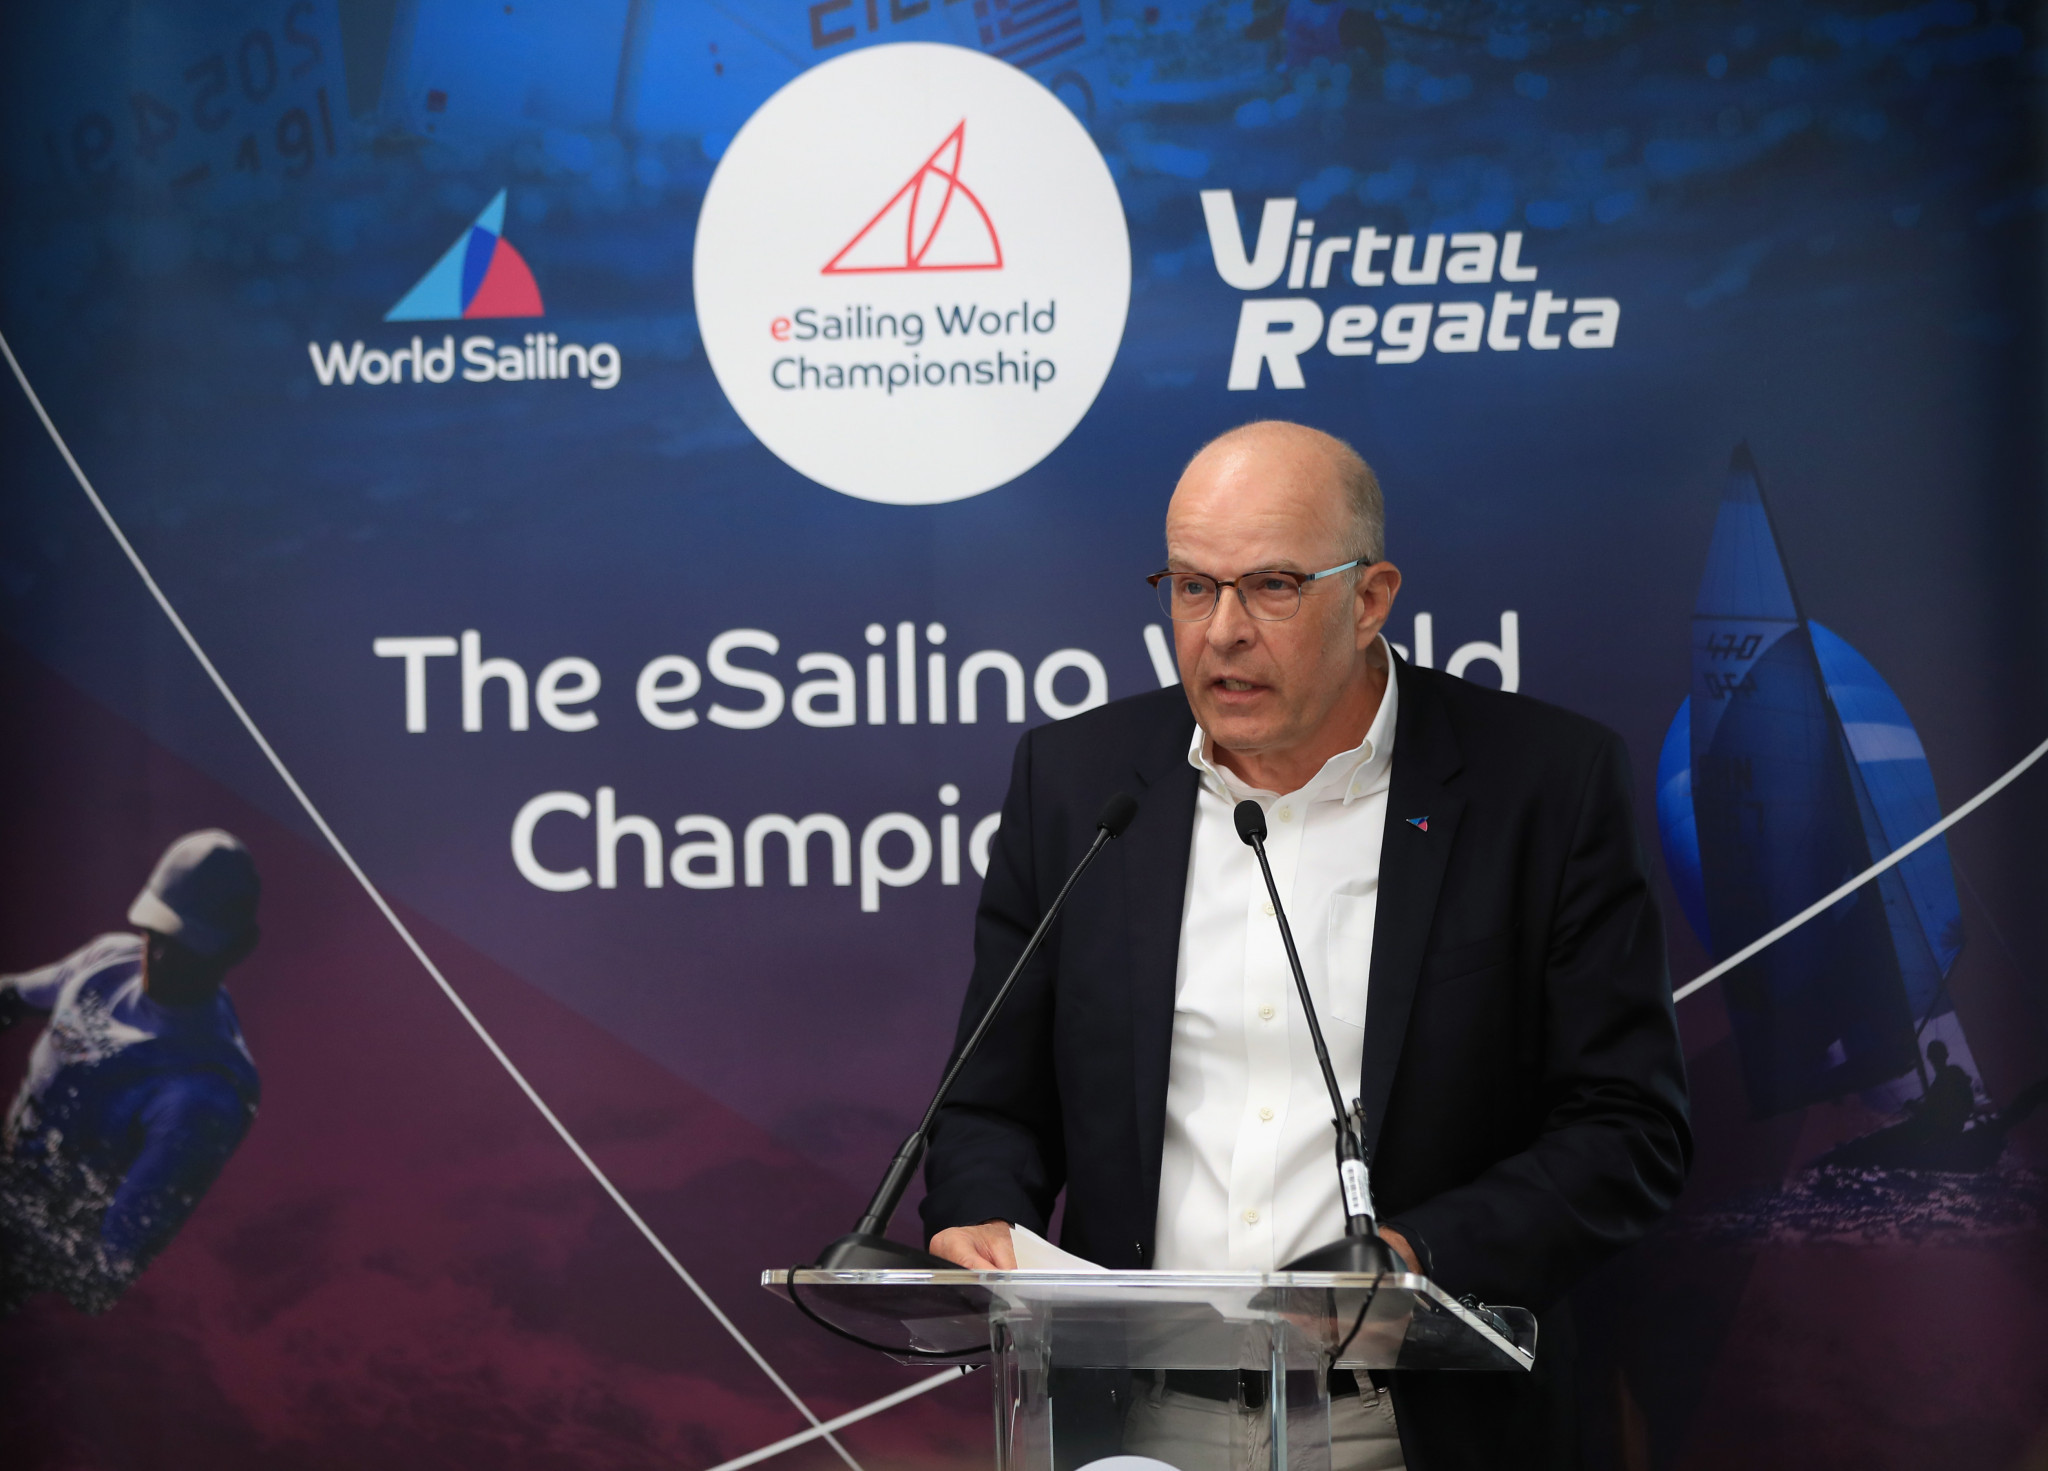 Almost 10 per cent of World Sailing members are currently ineligible to vote in the Presidential election, where incumbent Kim Andersen is aiming for another term ©Getty Images